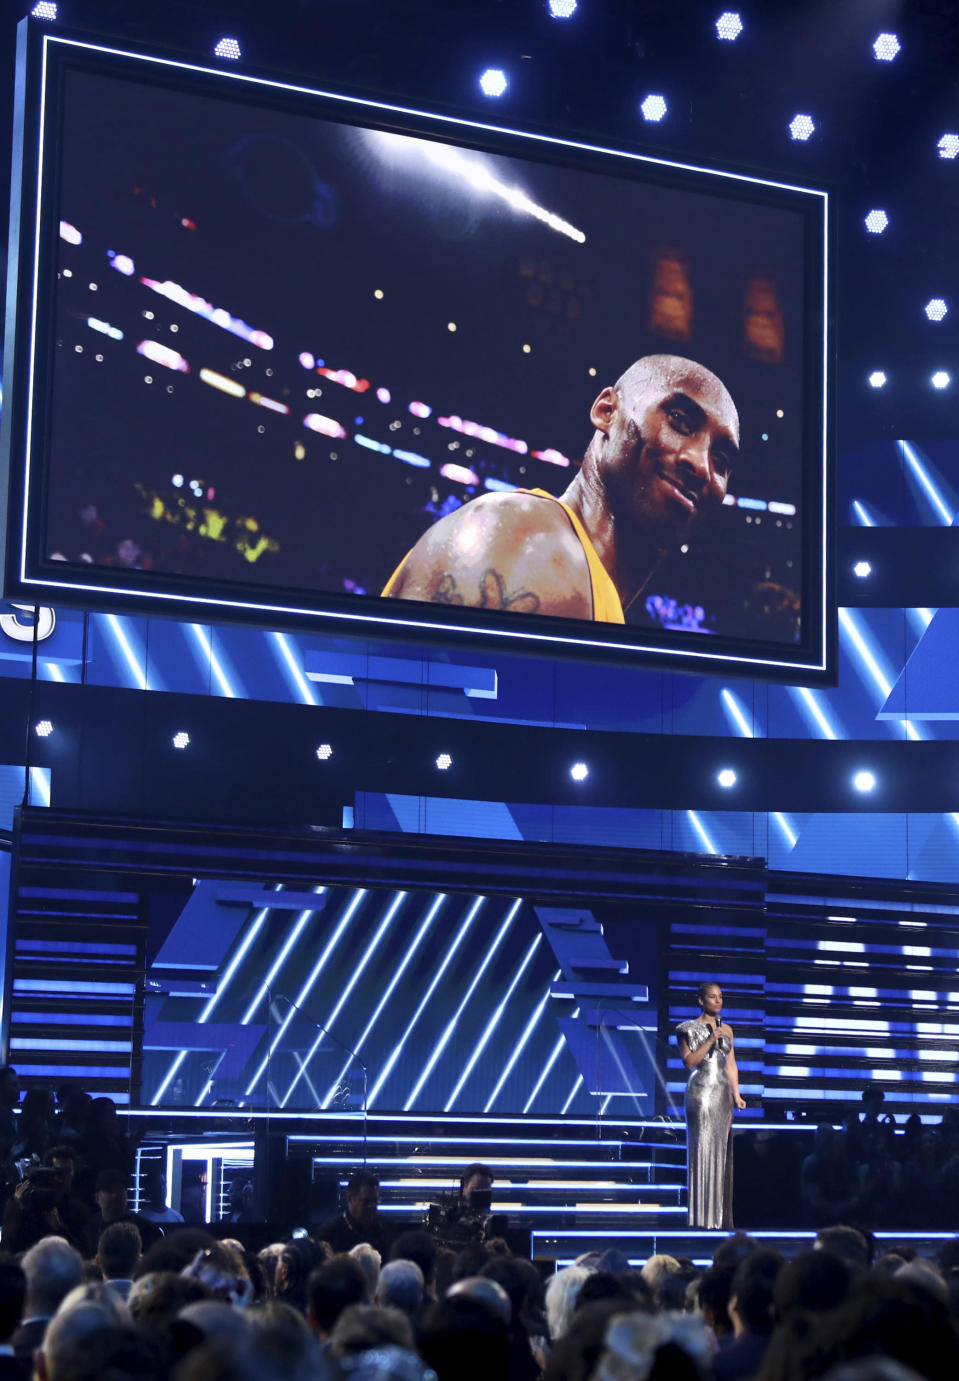 Host Alicia Keys speaks during a tribute in honor of the late Kobe Bryant at the 62nd annual Grammy Awards on Sunday, Jan. 26, 2020, in Los Angeles. (Photo by Matt Sayles/Invision/AP)